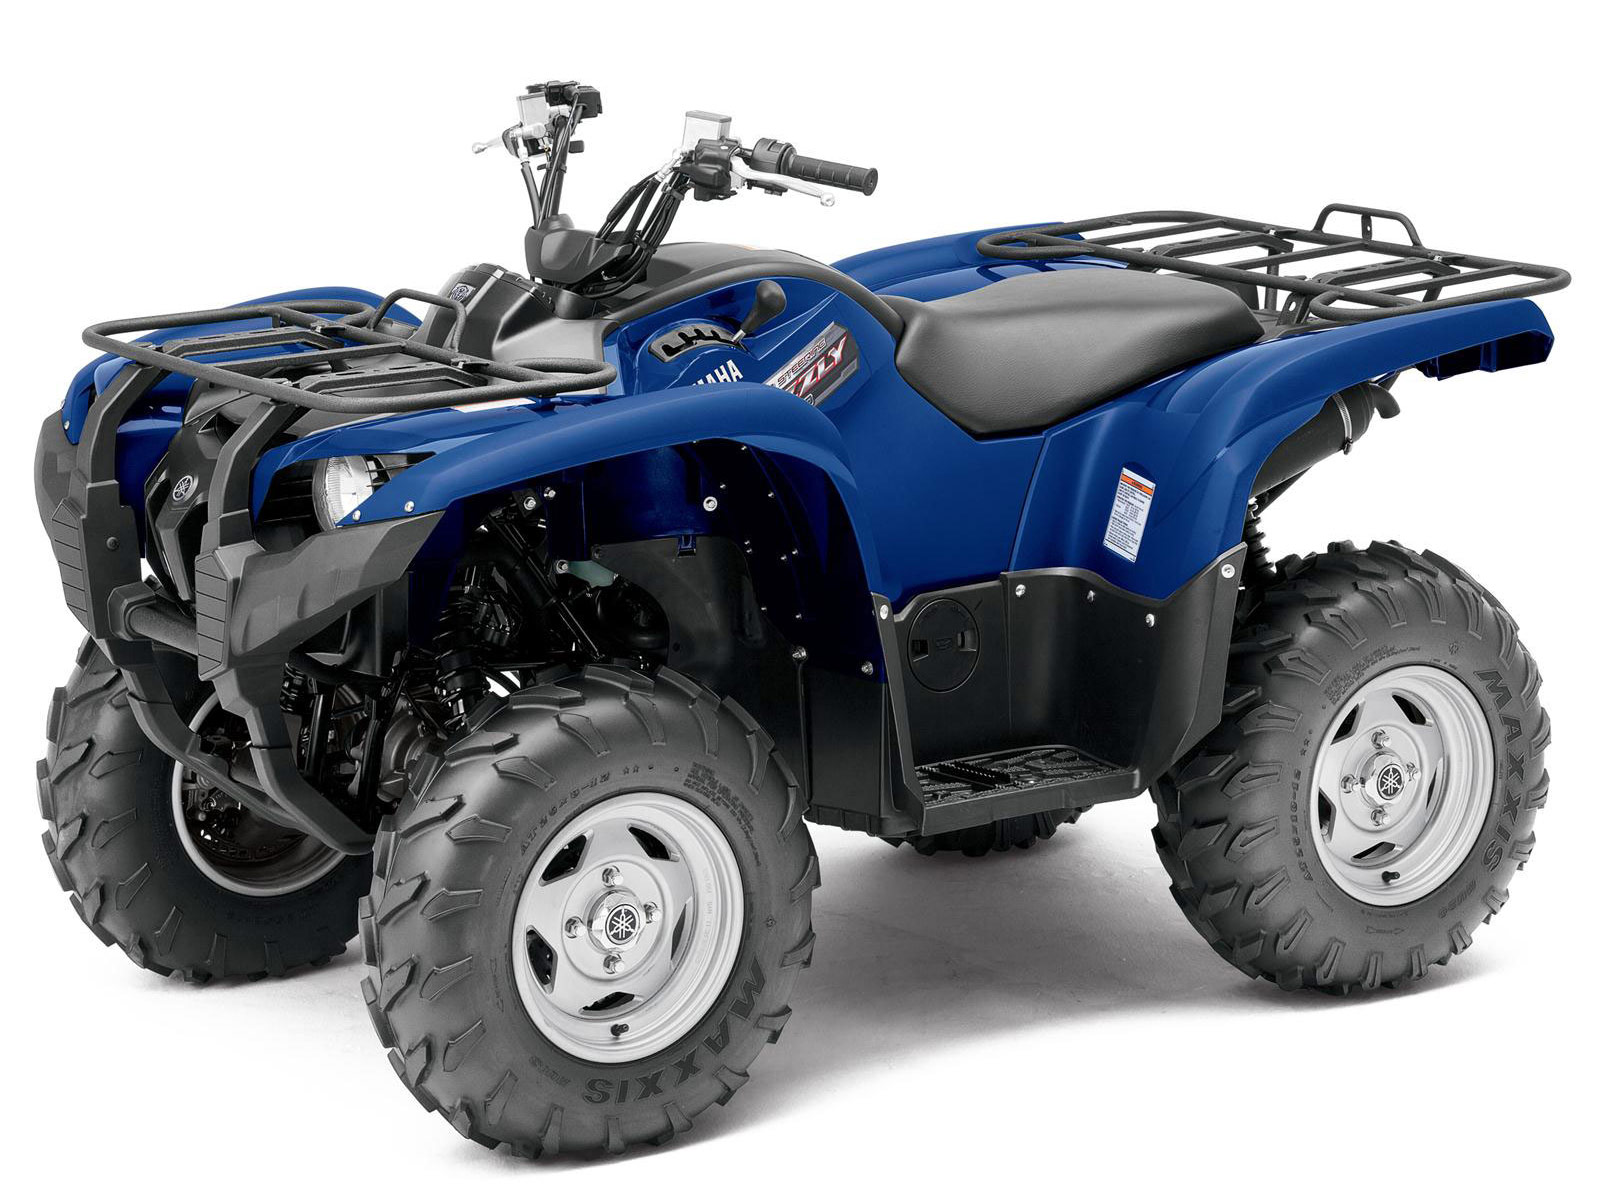 2013 grizzly 700 fi auto 4x4 eps yamaha atv pictures. Black Bedroom Furniture Sets. Home Design Ideas